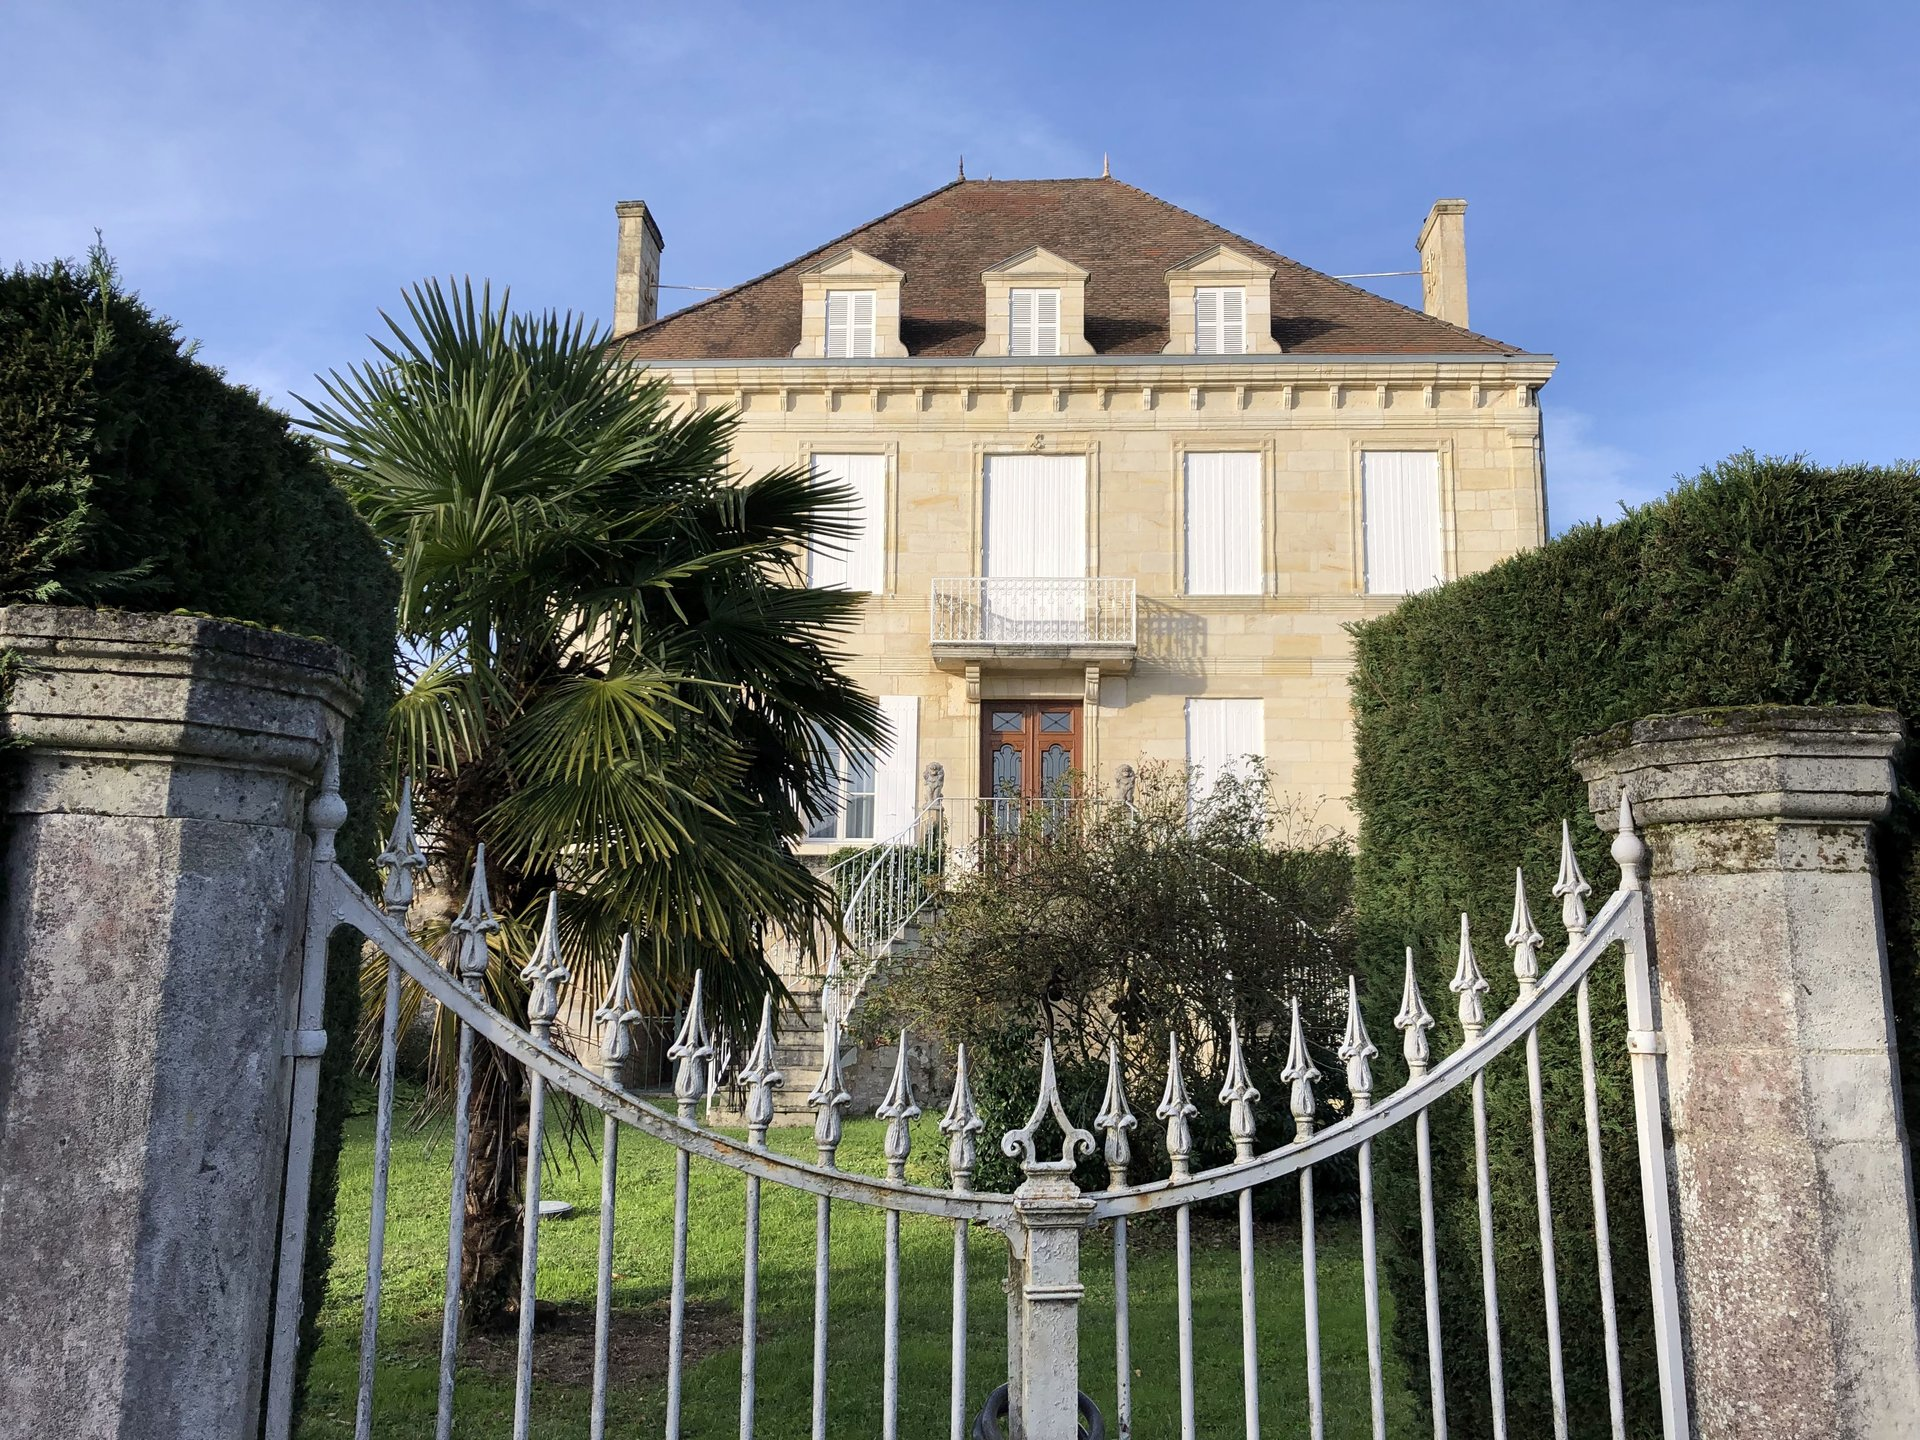 1870 Bourgeois Mansion - between Bordeaux and Angoulême